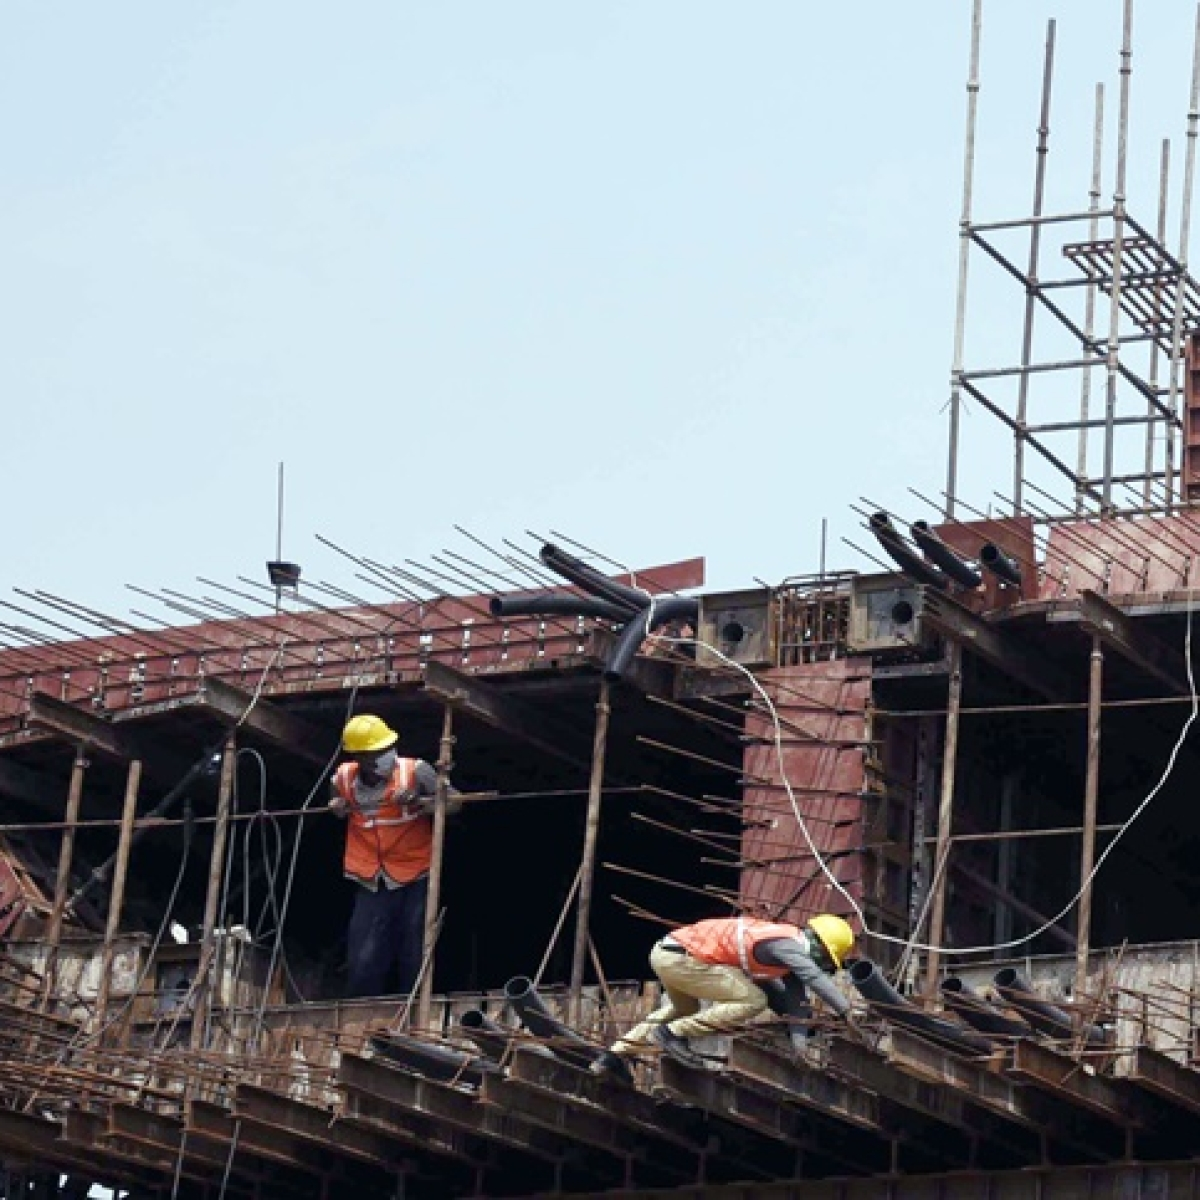 Housing sales drop by 81% in Q2 2020, new launches by 98%: ANAROCK